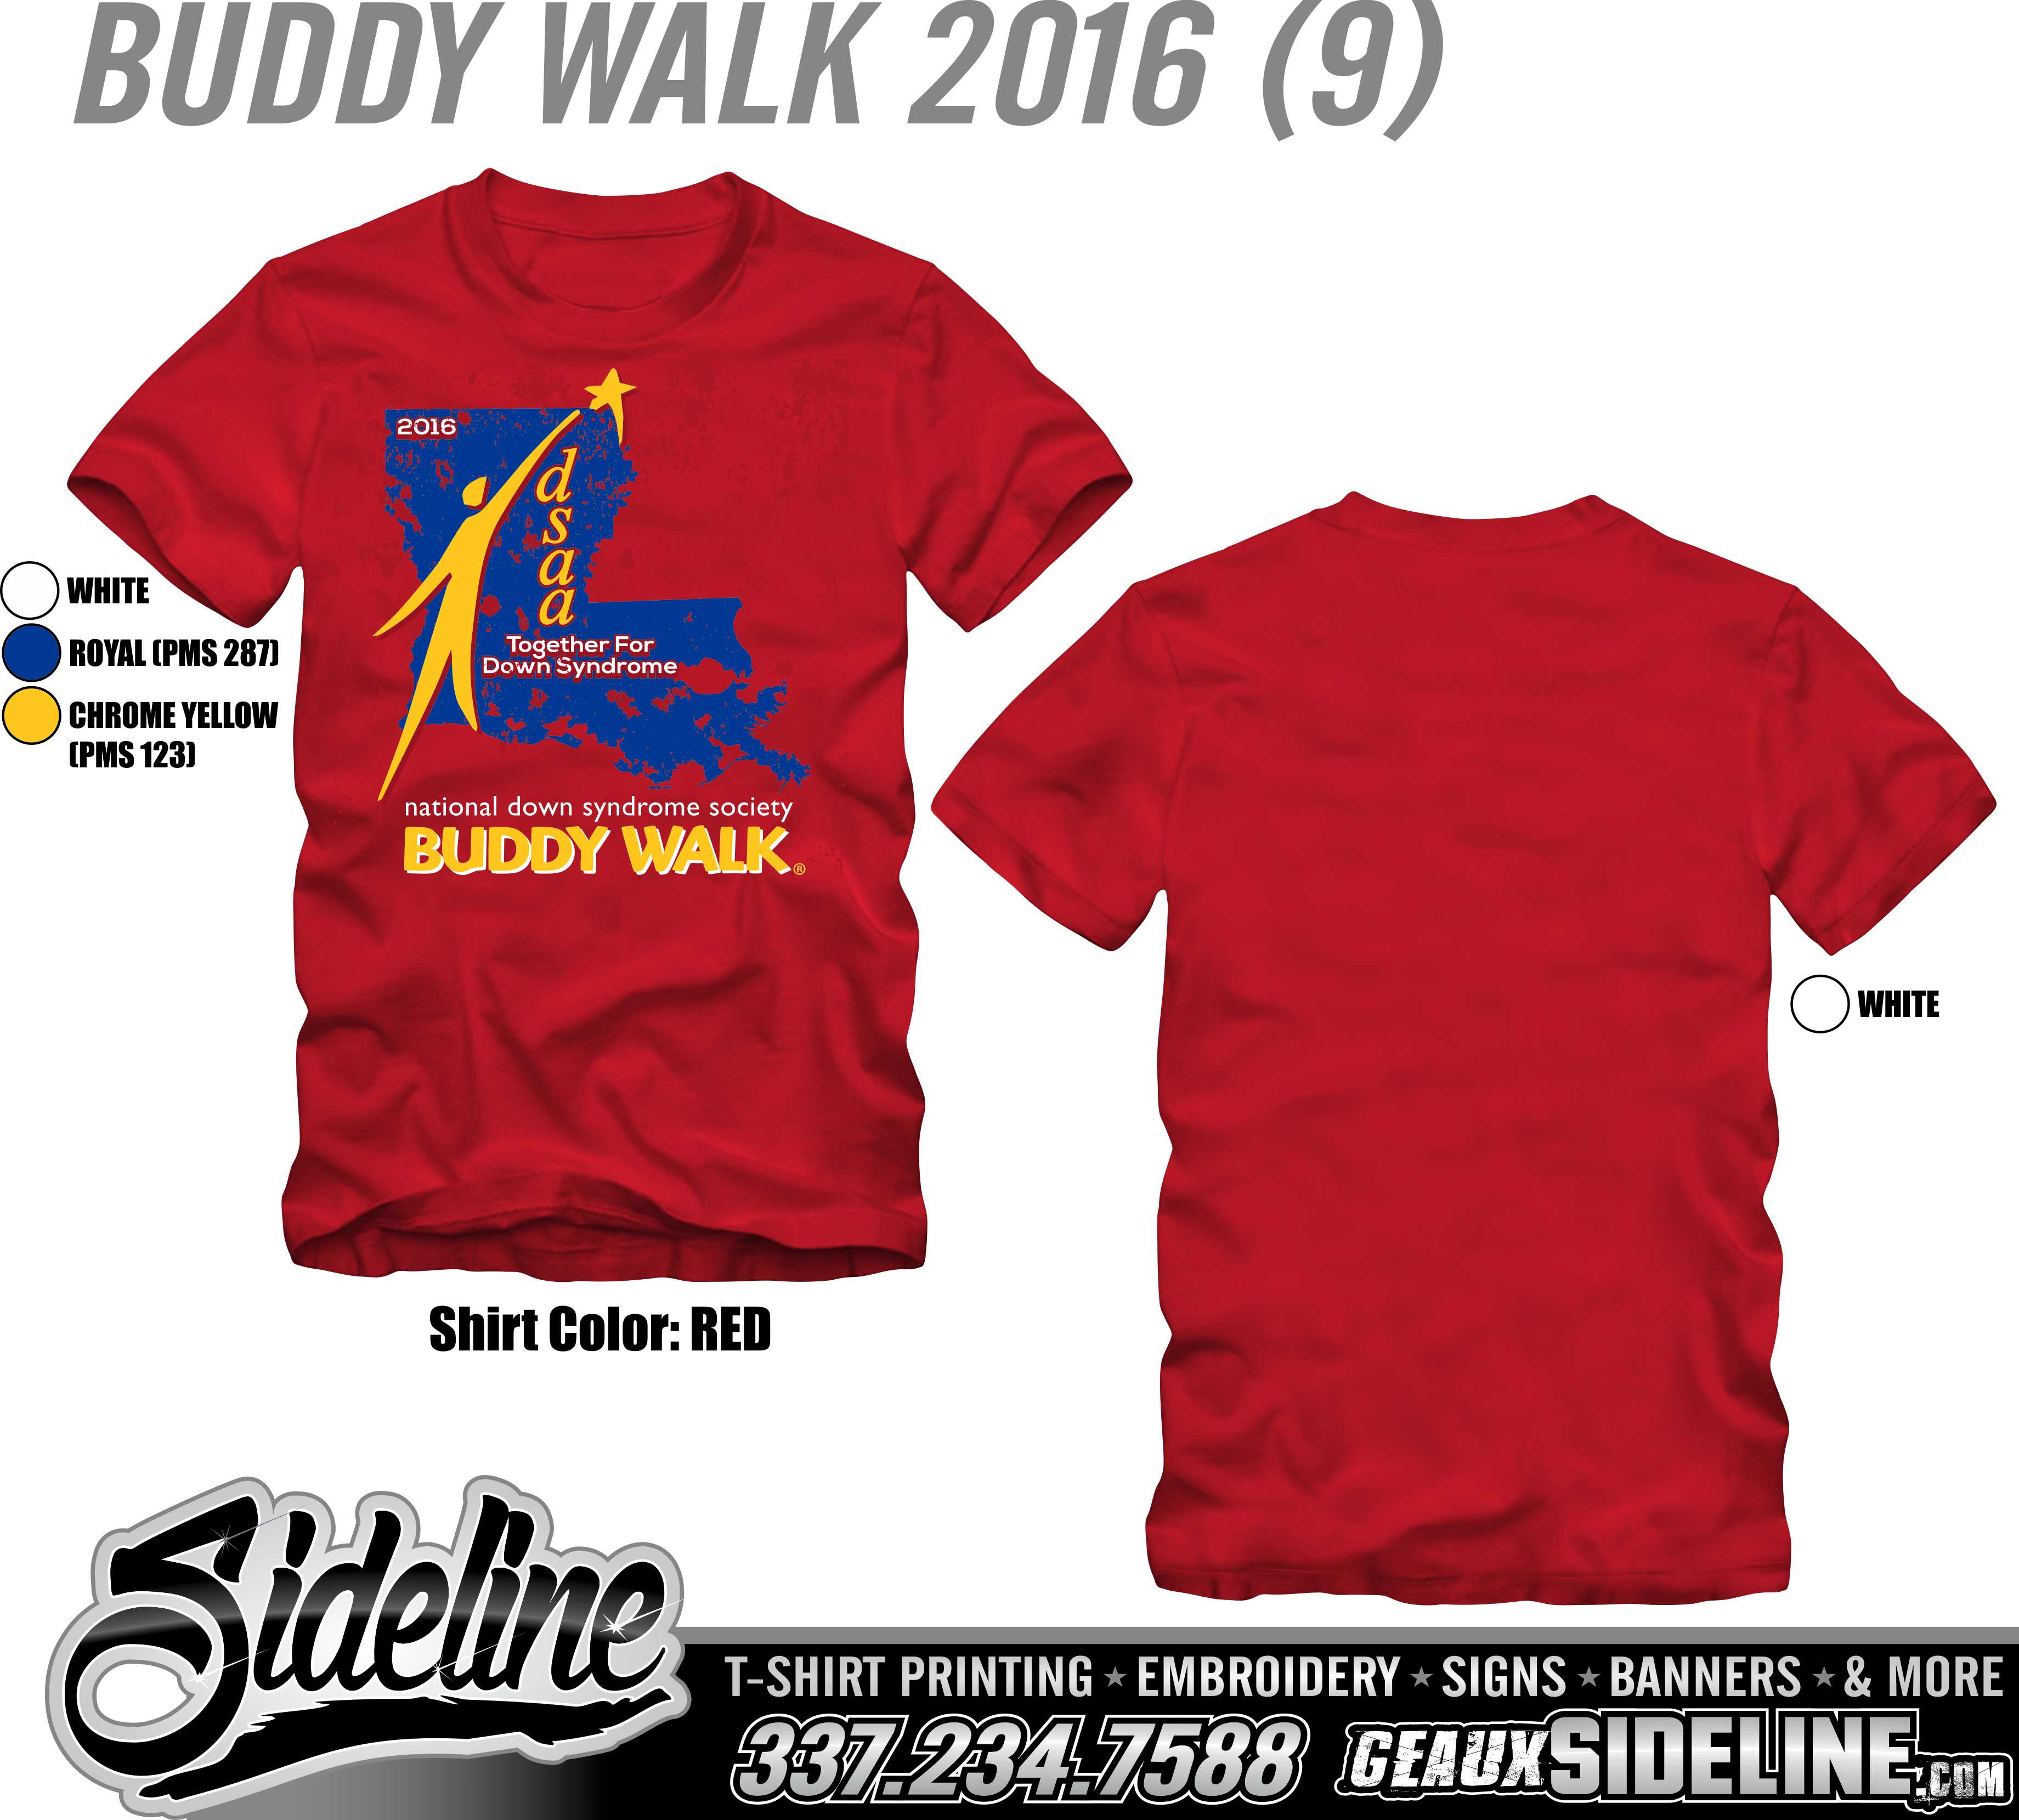 BUDDY WALK 2016 (9) RED_no distress